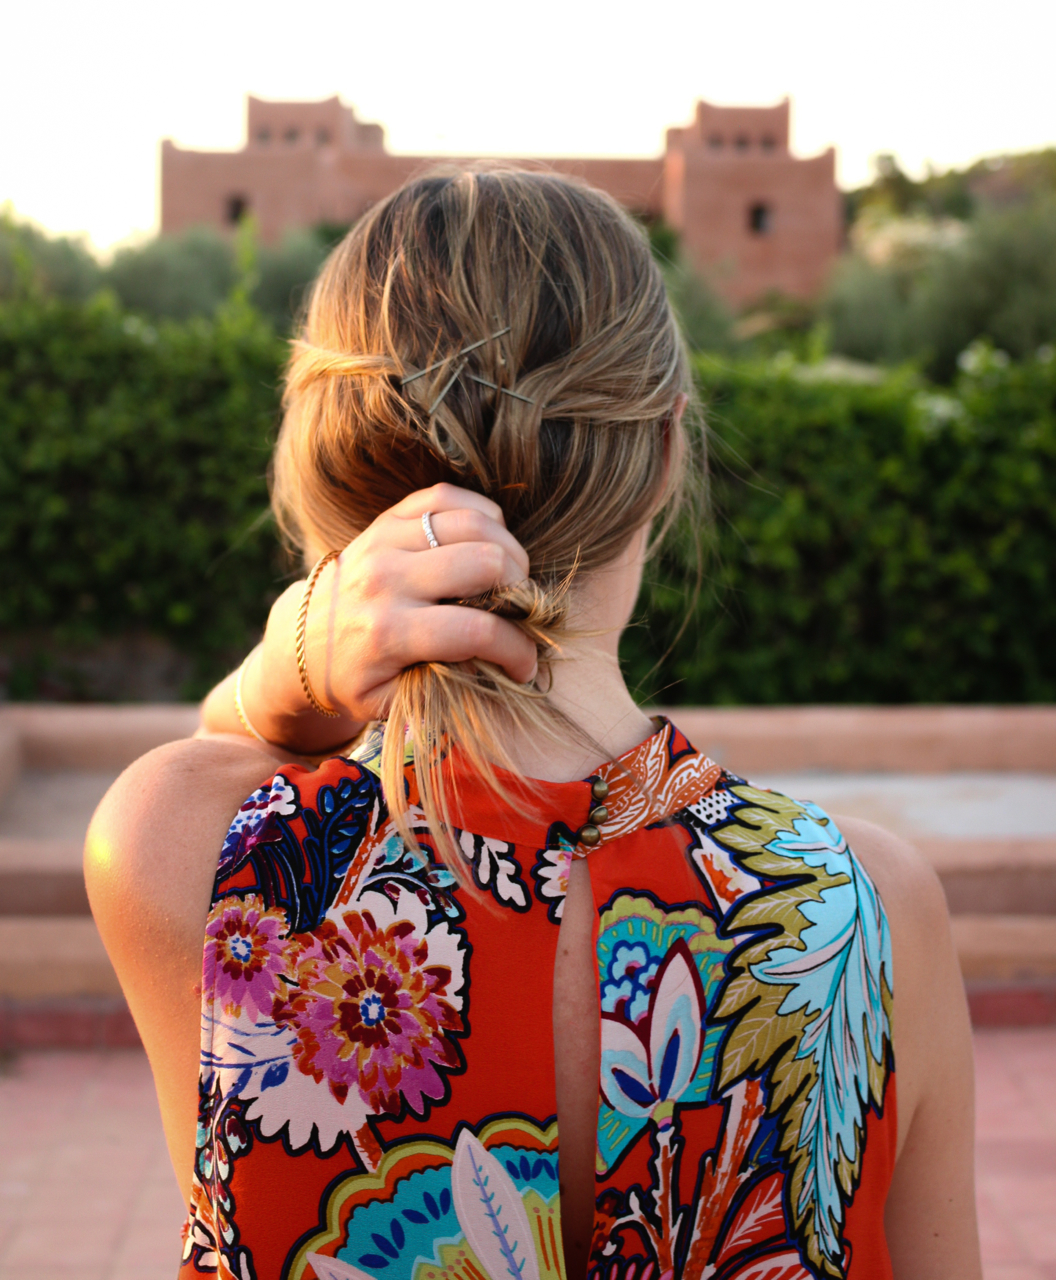 Anthropologie Maeve Larkhill Swing Dress at Kasbah Bab Ourika, Morocco